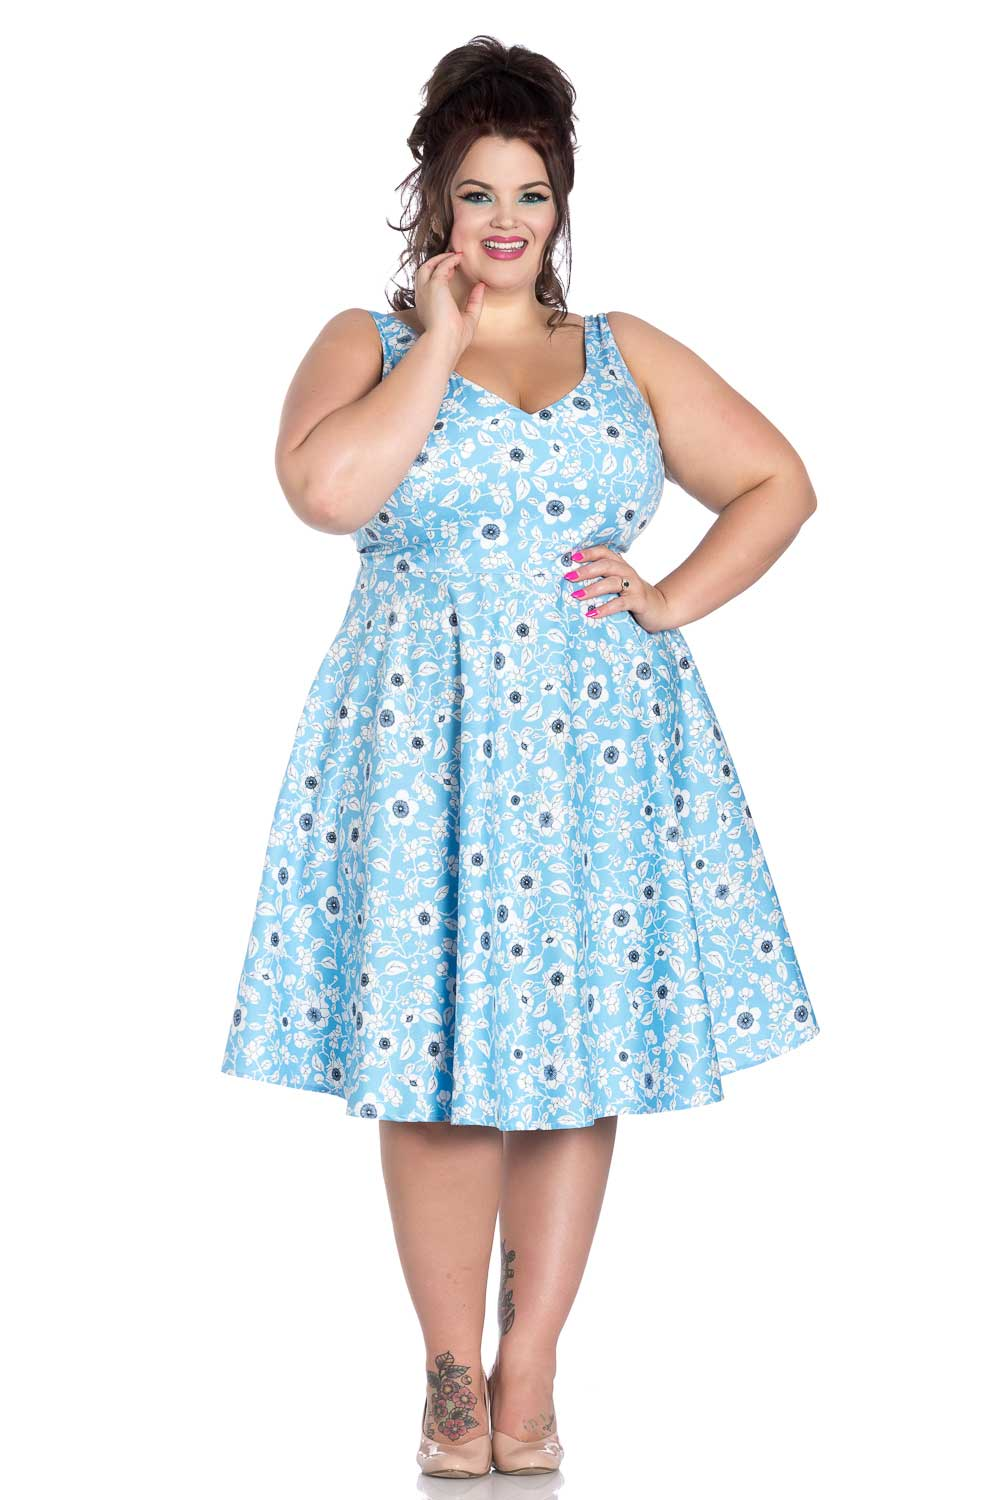 HELL BUNNY DAPHNE FLORAL 50s style SUMMER BLUE DRESS XS-4XL